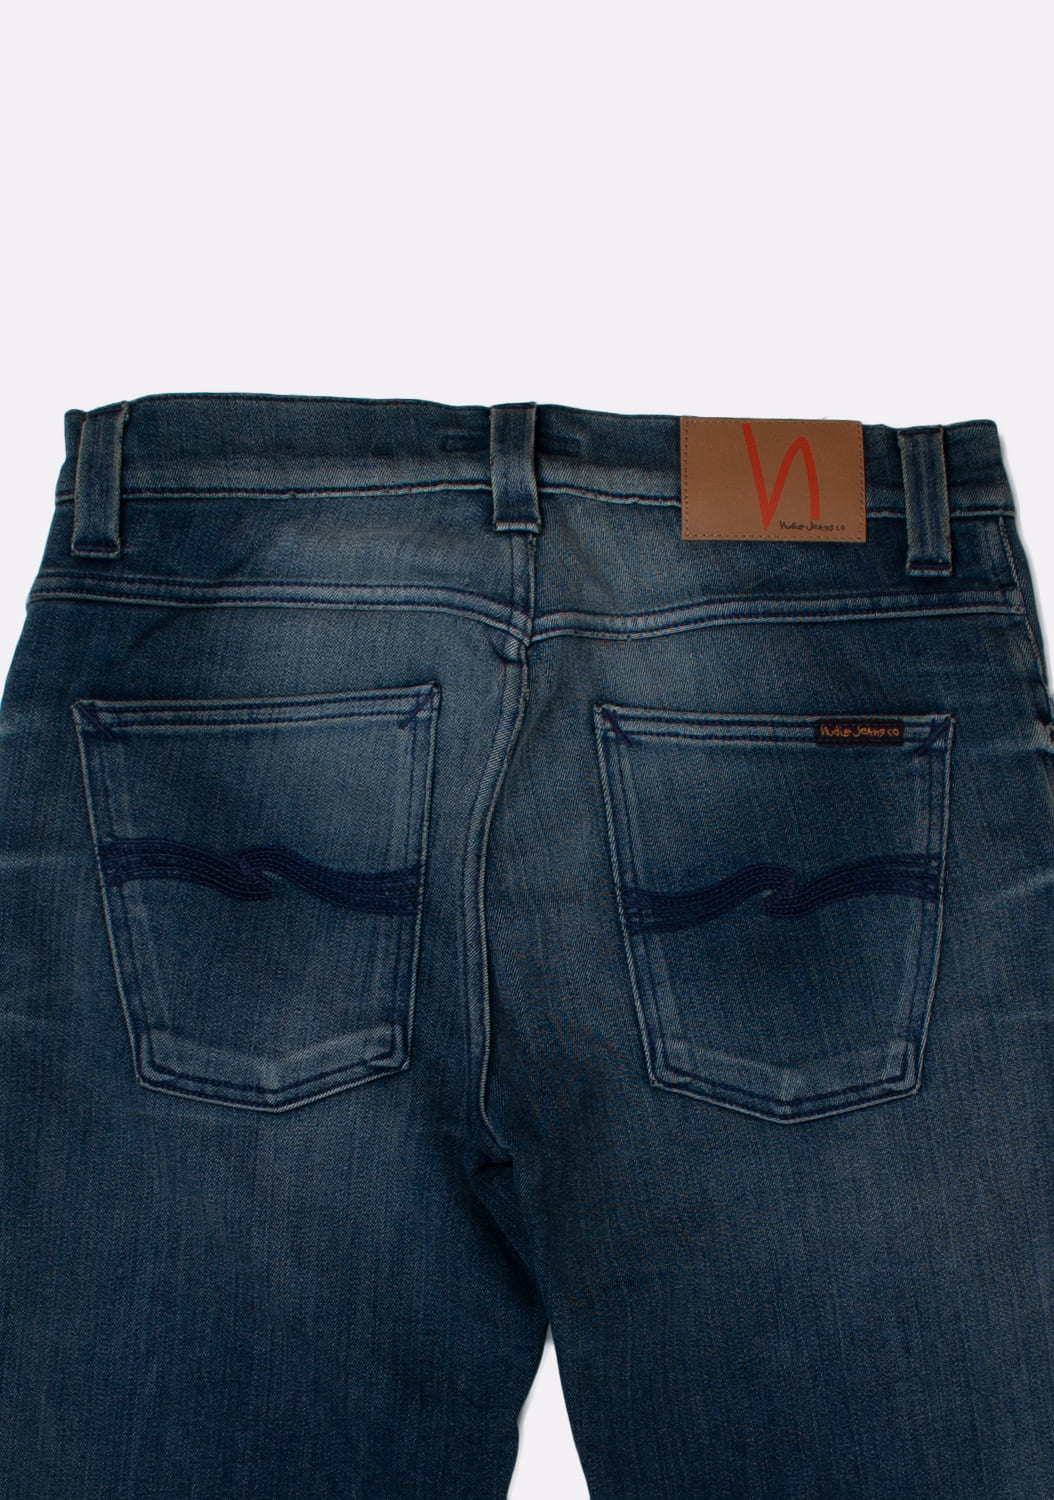 Nudie-Jeans-Slim-Jim-Scraped-melynai-pilki-Straight-dzinsai-dydis-32-34 (5)